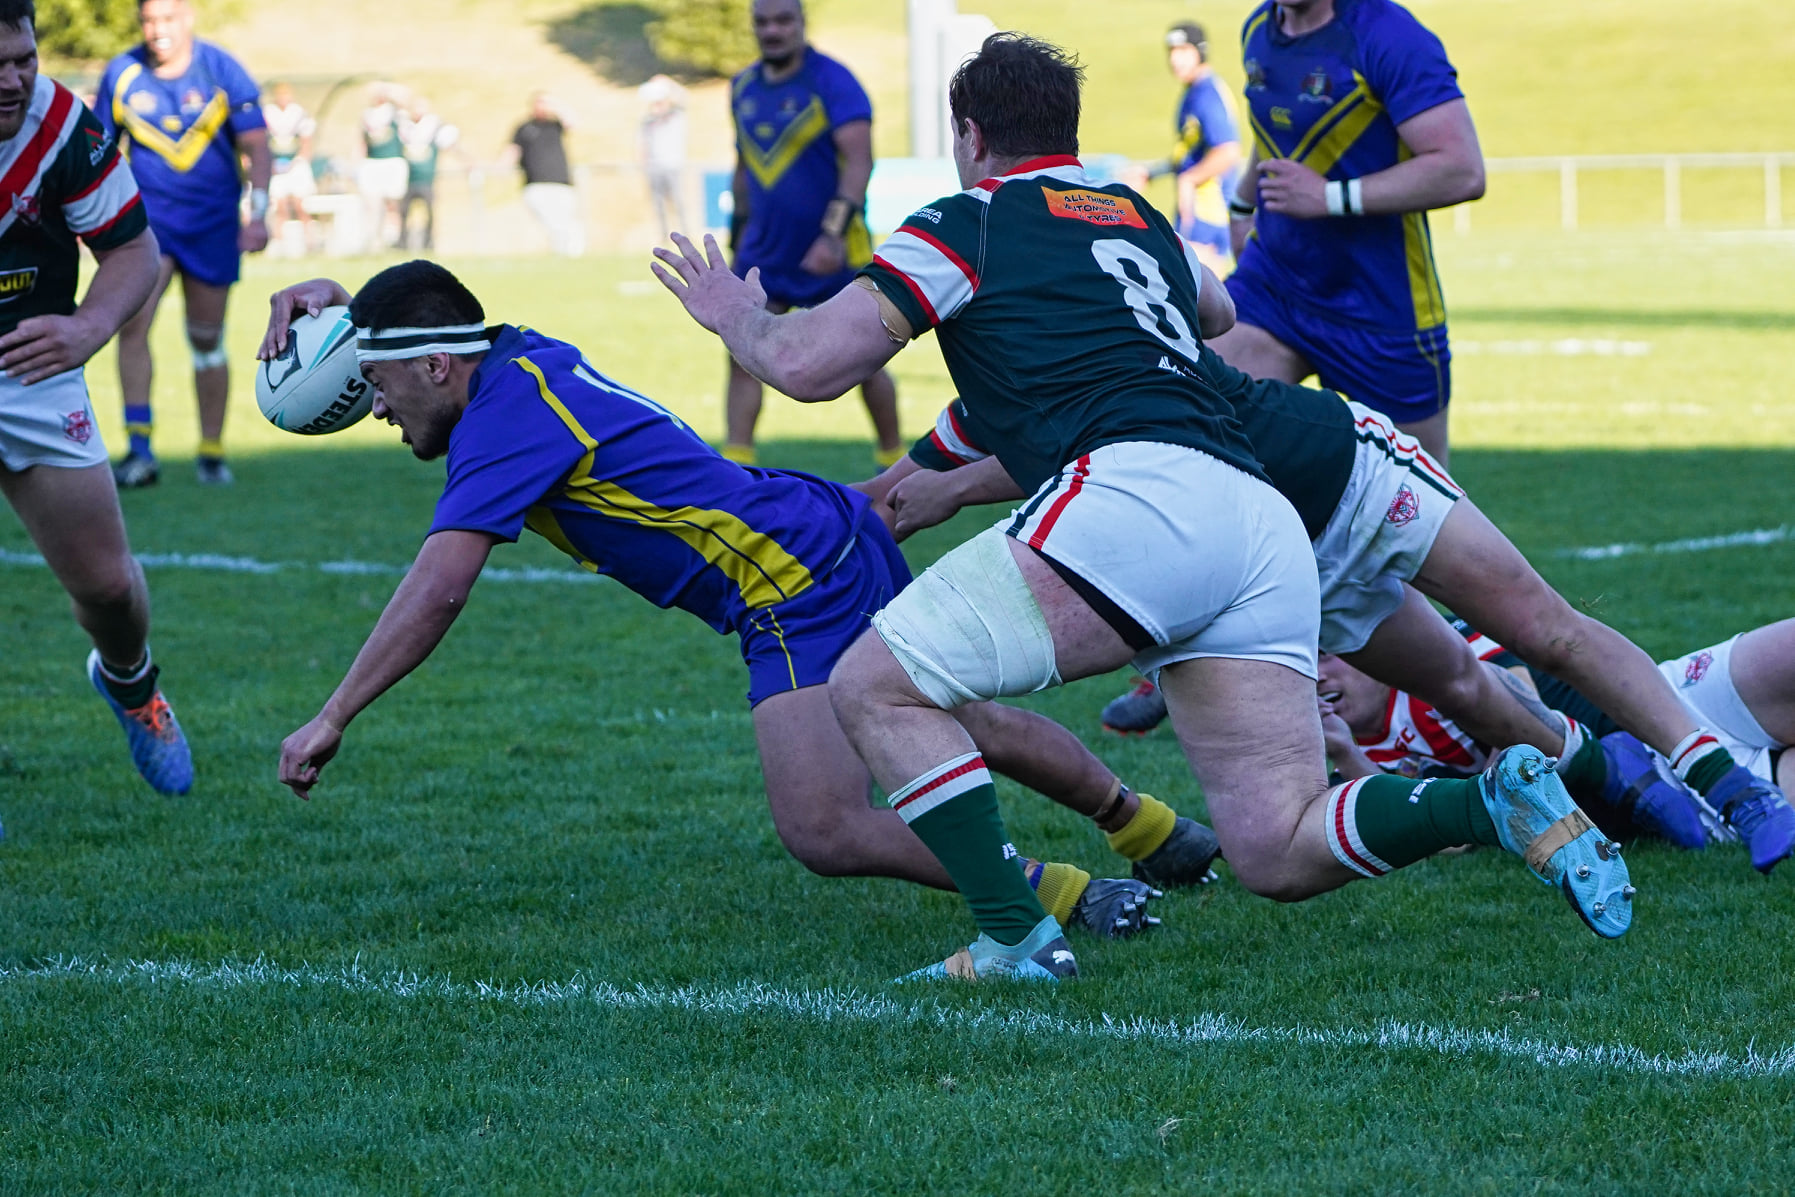 Kingfishers kick off title defence at Ascot Park